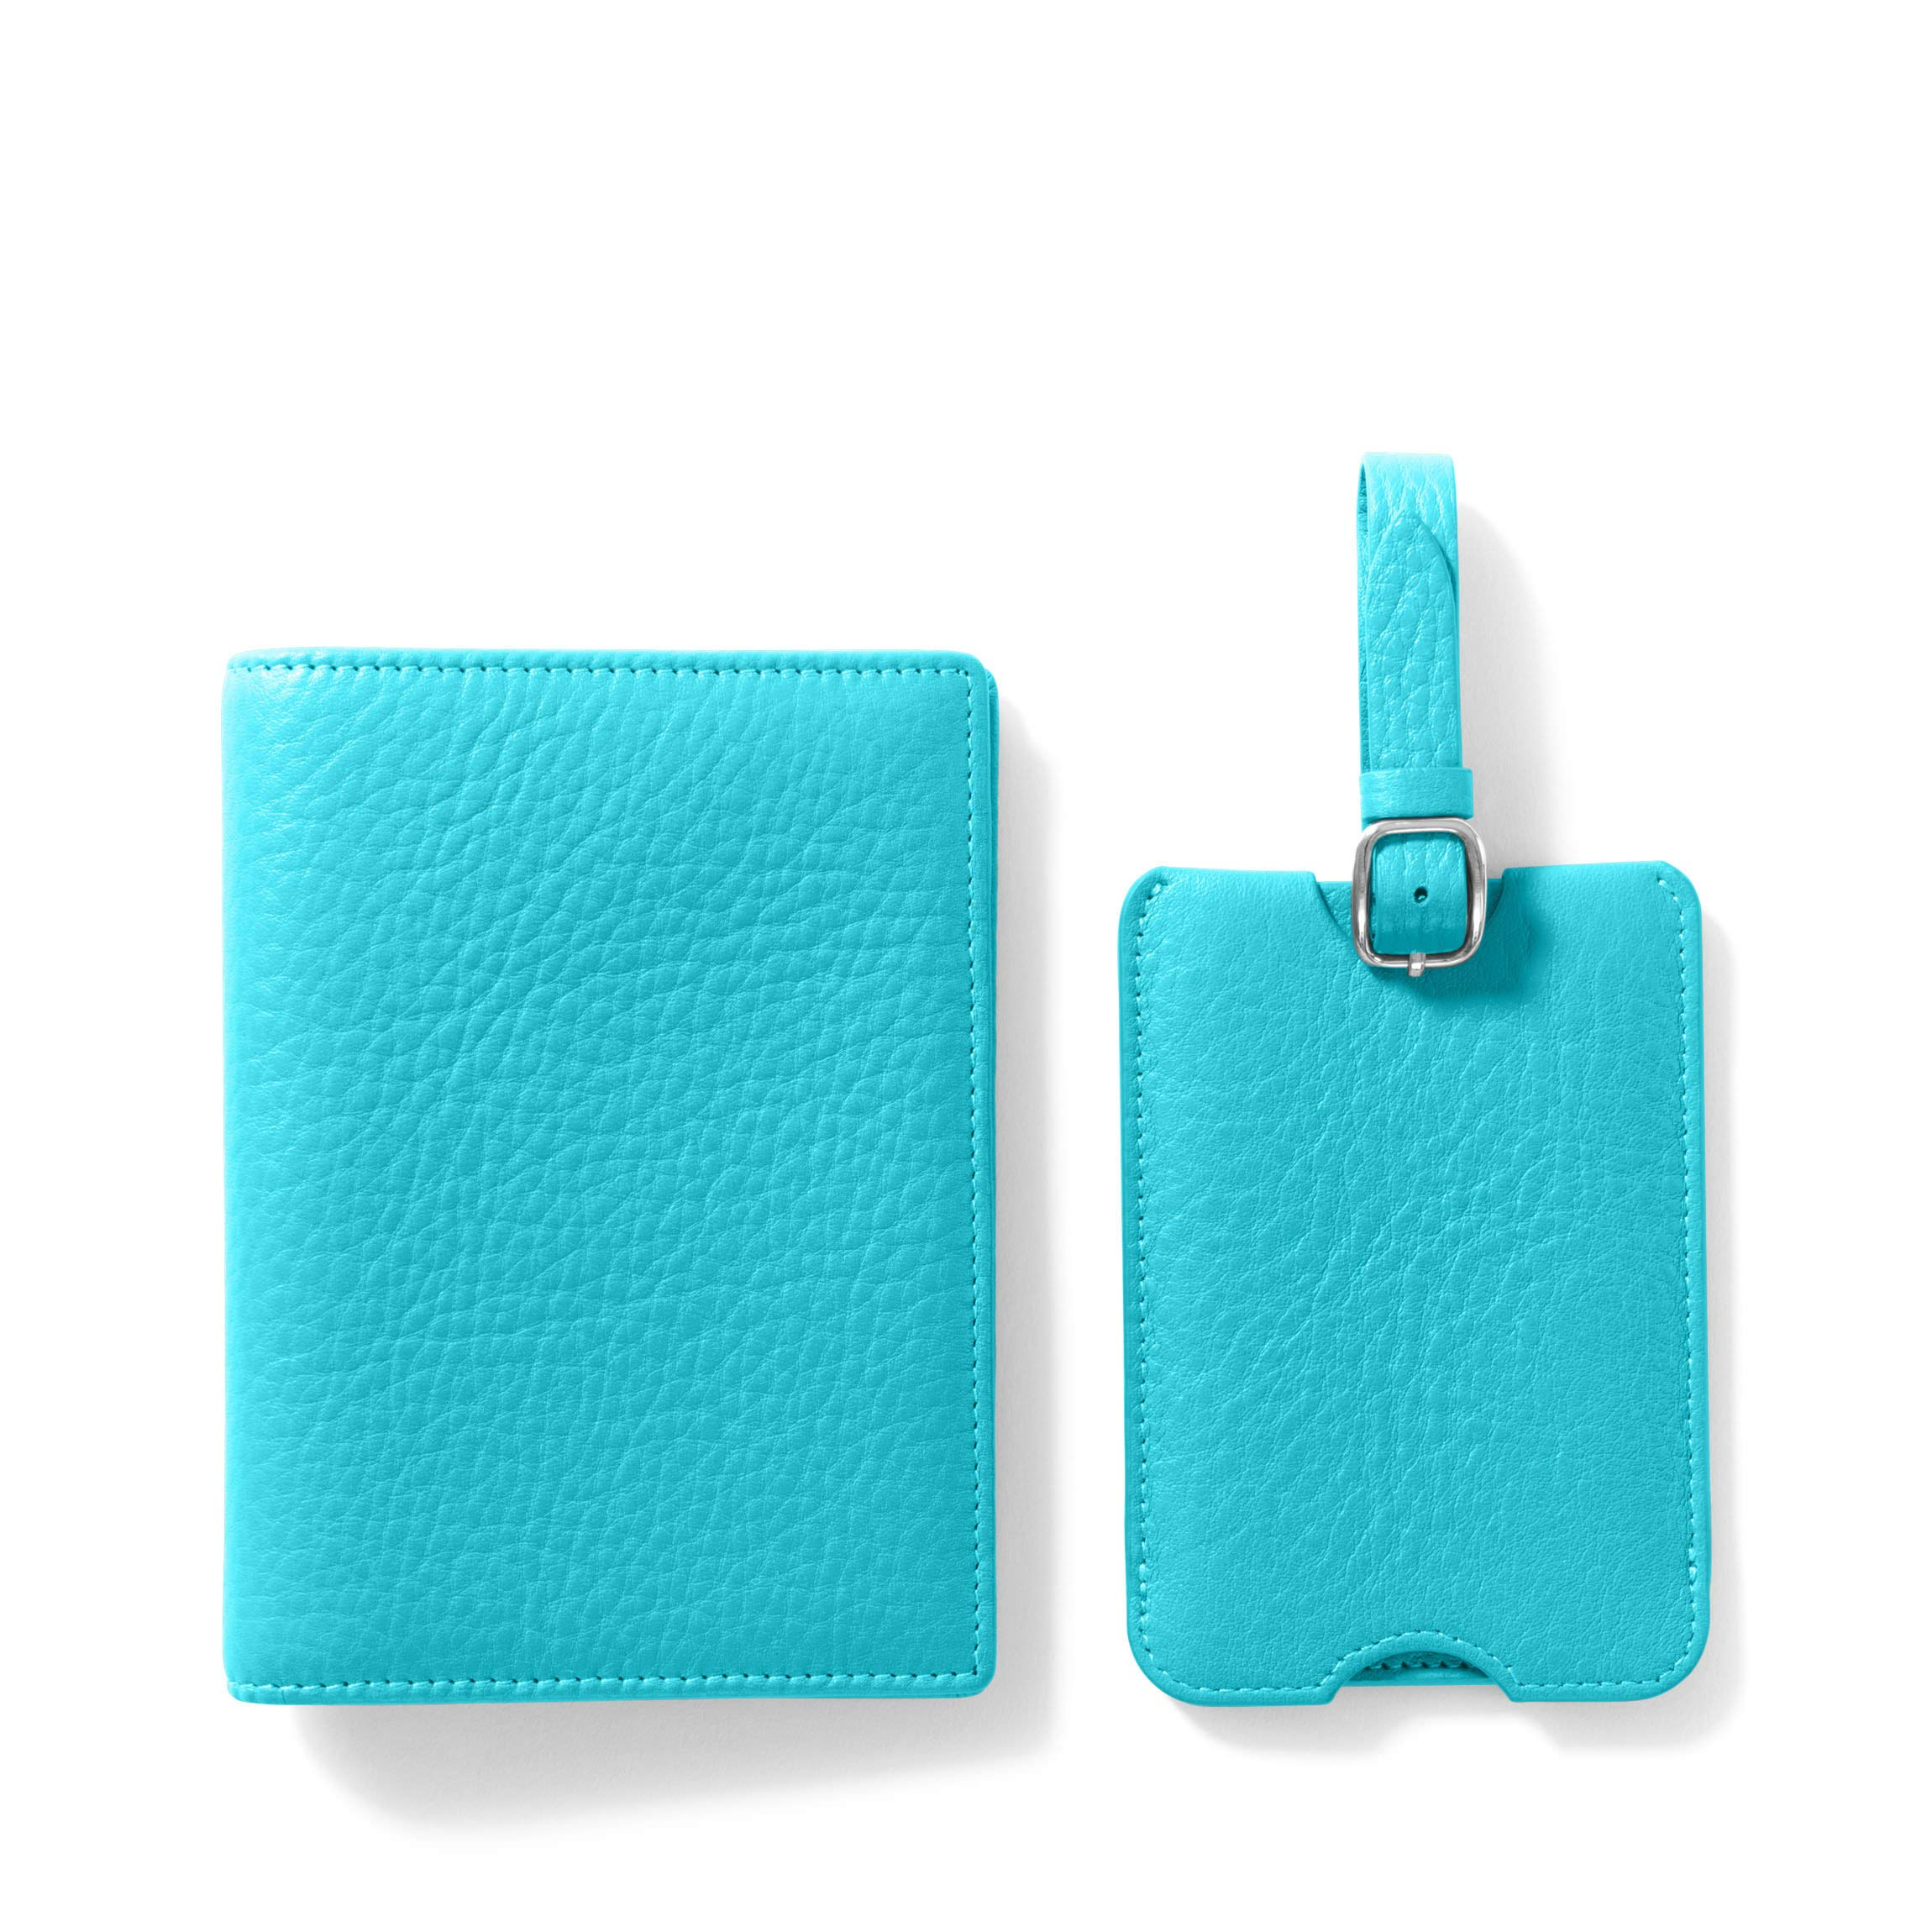 Deluxe Passport Cover + Luggage Tag Set - Full Grain Leather - Teal (blue)